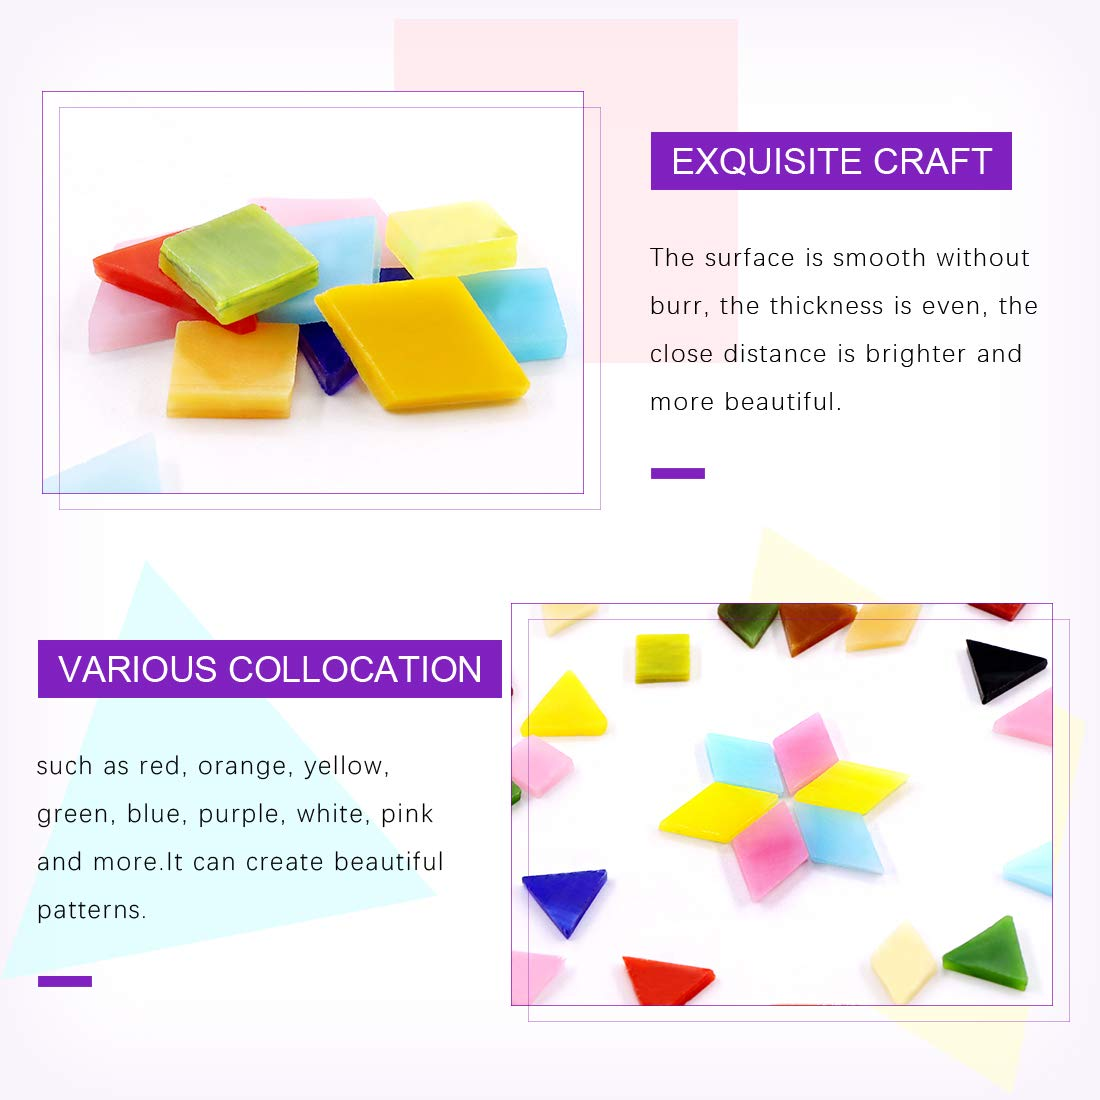 Genuine Mosaic Tiles Glass Pieces Mosaic Perfect for Home Decoration Crafts Supply Swpeet 1 Pound Mosaic Tiles Mixed Color Mosaic Glass Pieces with Organizing Container Panchromatic, Assortment Kit